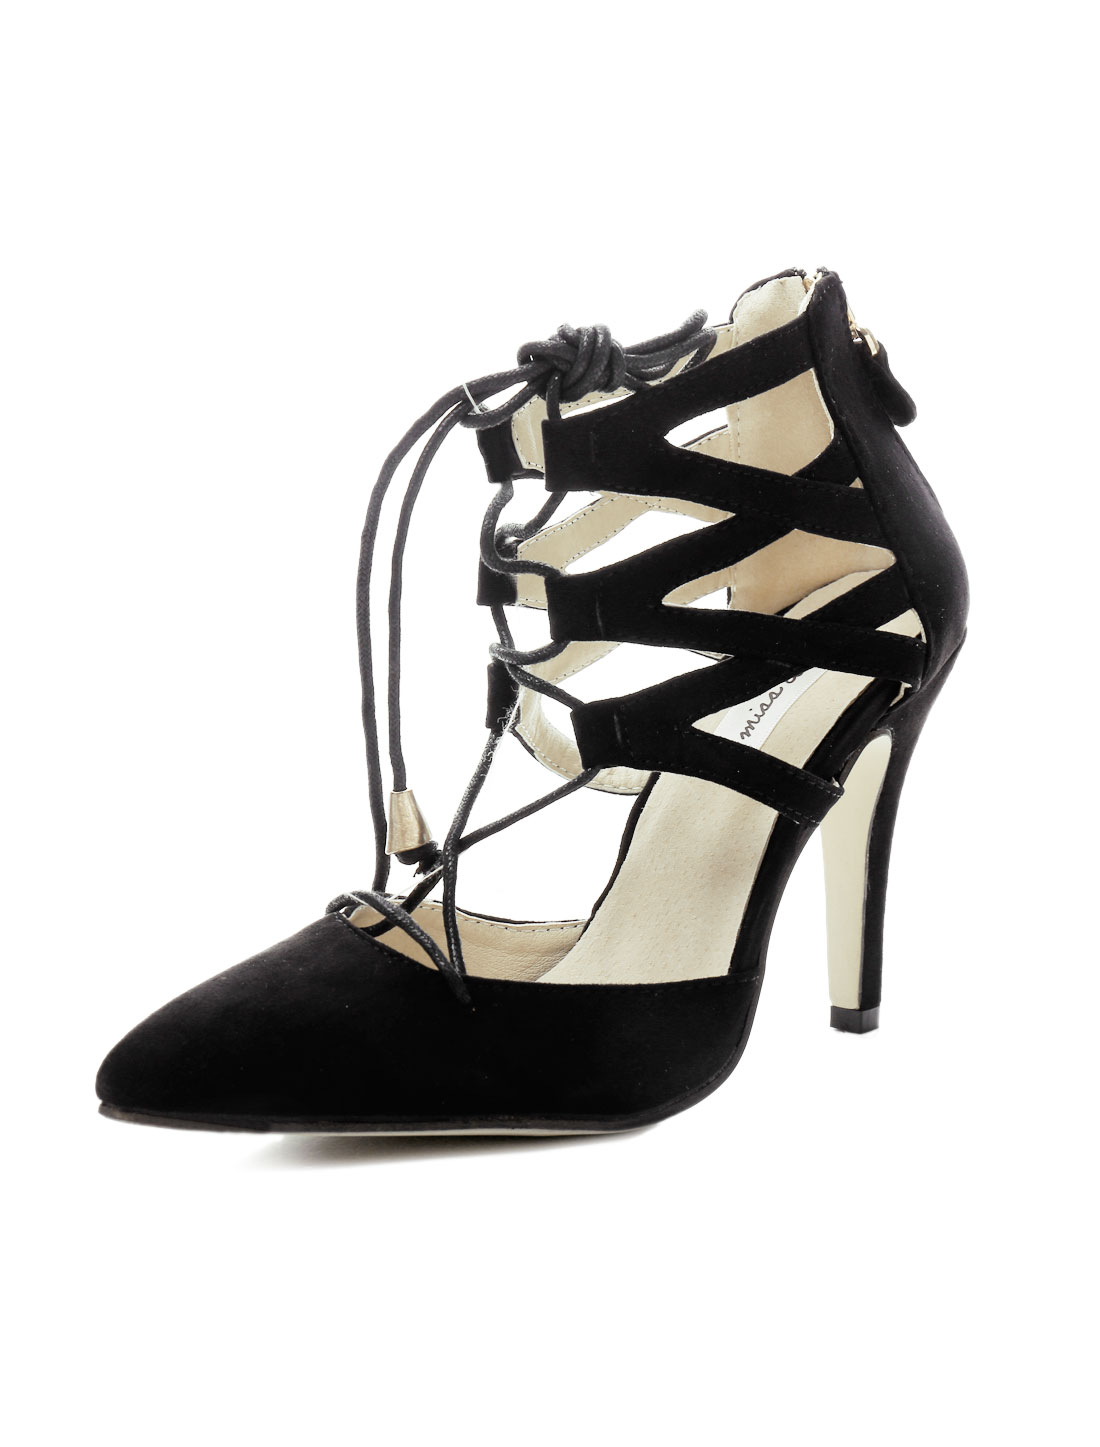 Ladies Lace up Straps Pointed Toe Stiletto Summer Casual Heels US 6.5